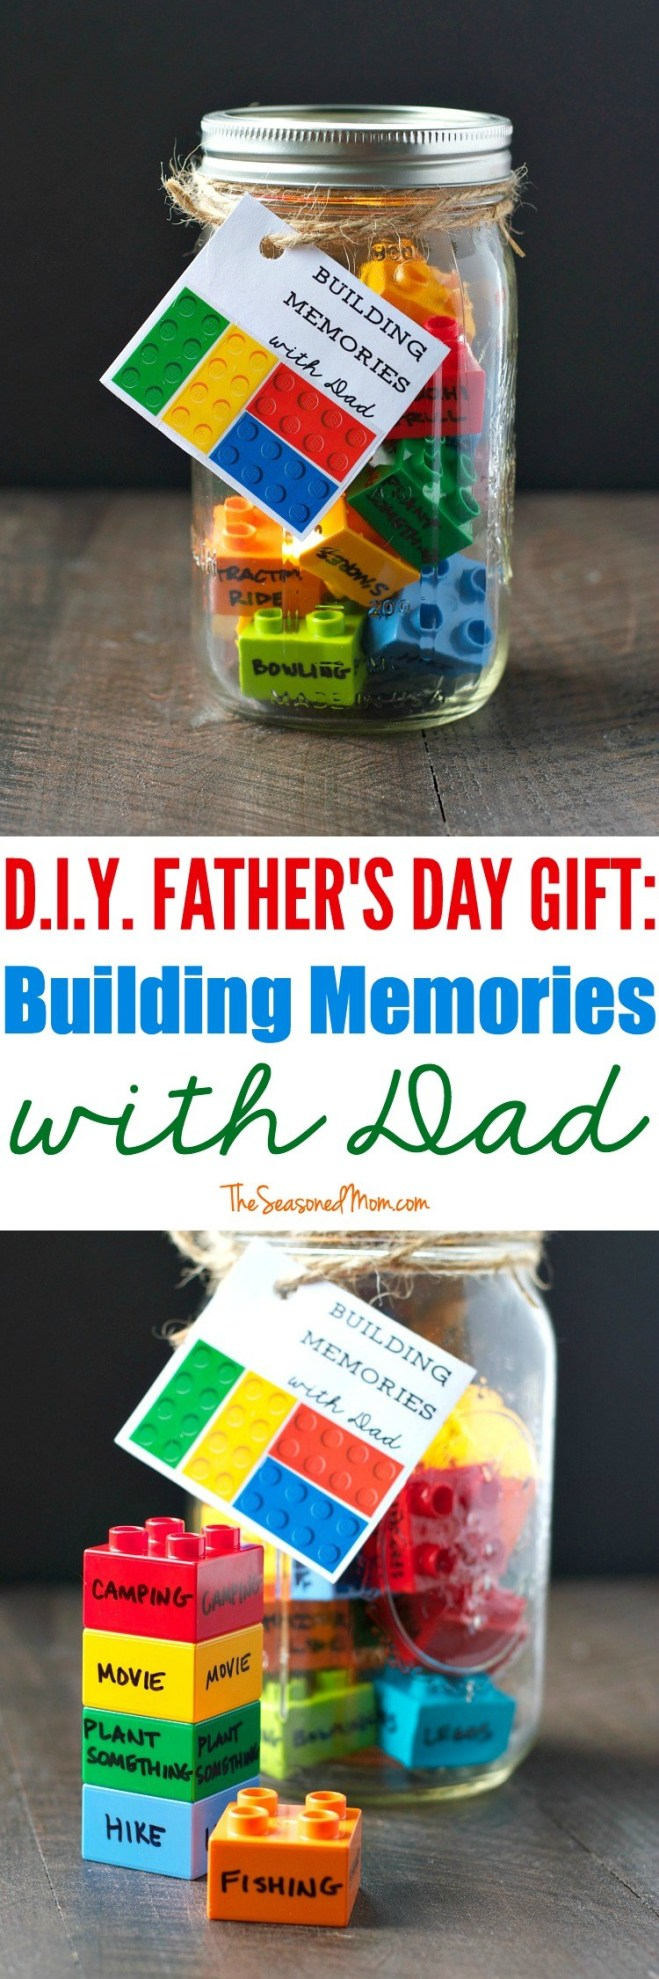 Building-Memories-with-Dad